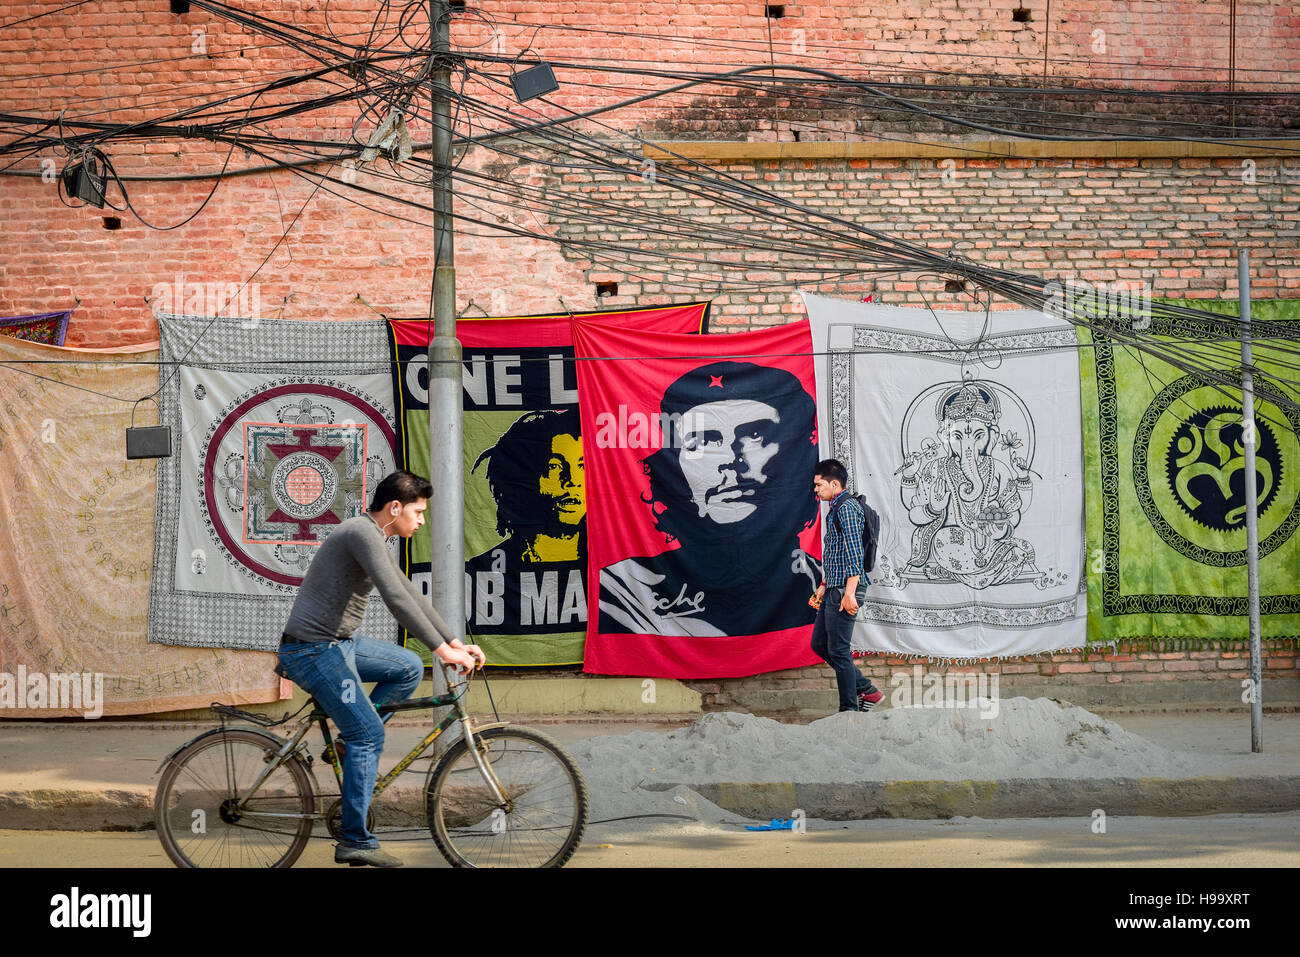 Banner flags of Che Guevara and Bob Marley on sale in one of the streets of Kathmandu, Nepal. © Reynold Sumayku - Stock Image